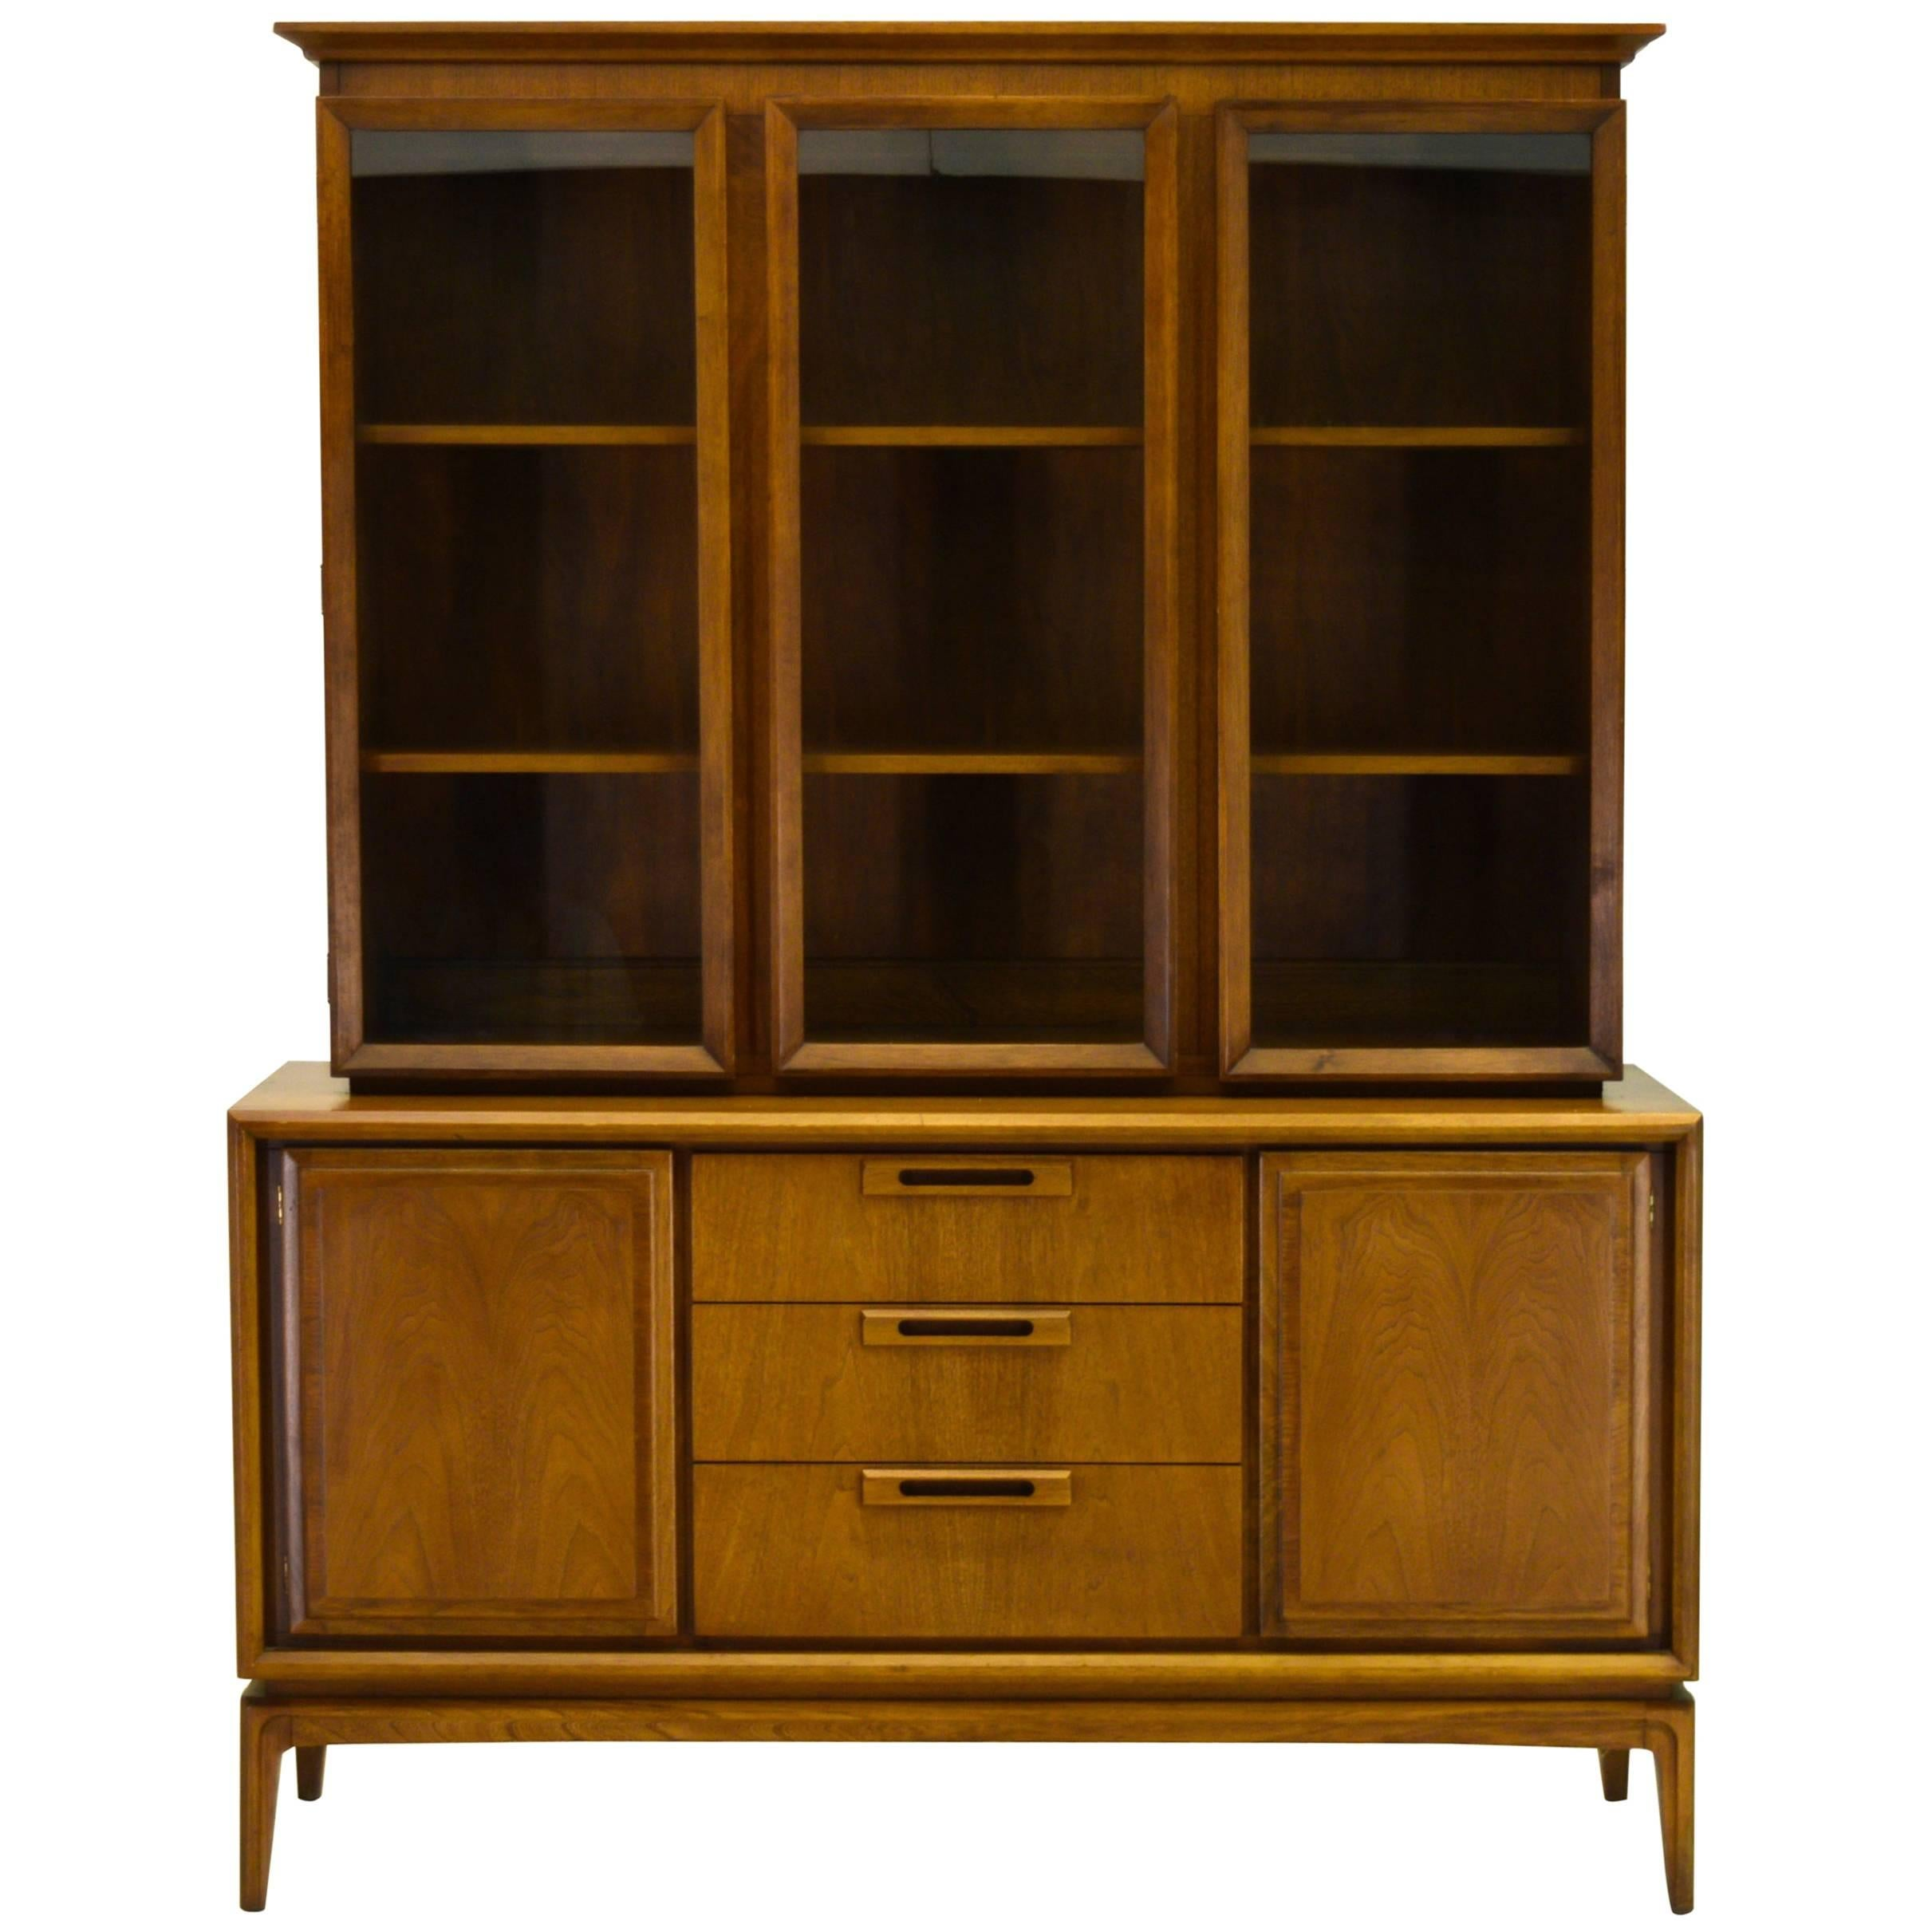 Beau Two Piece American Walnut China Cabinet And Hutch For Sale